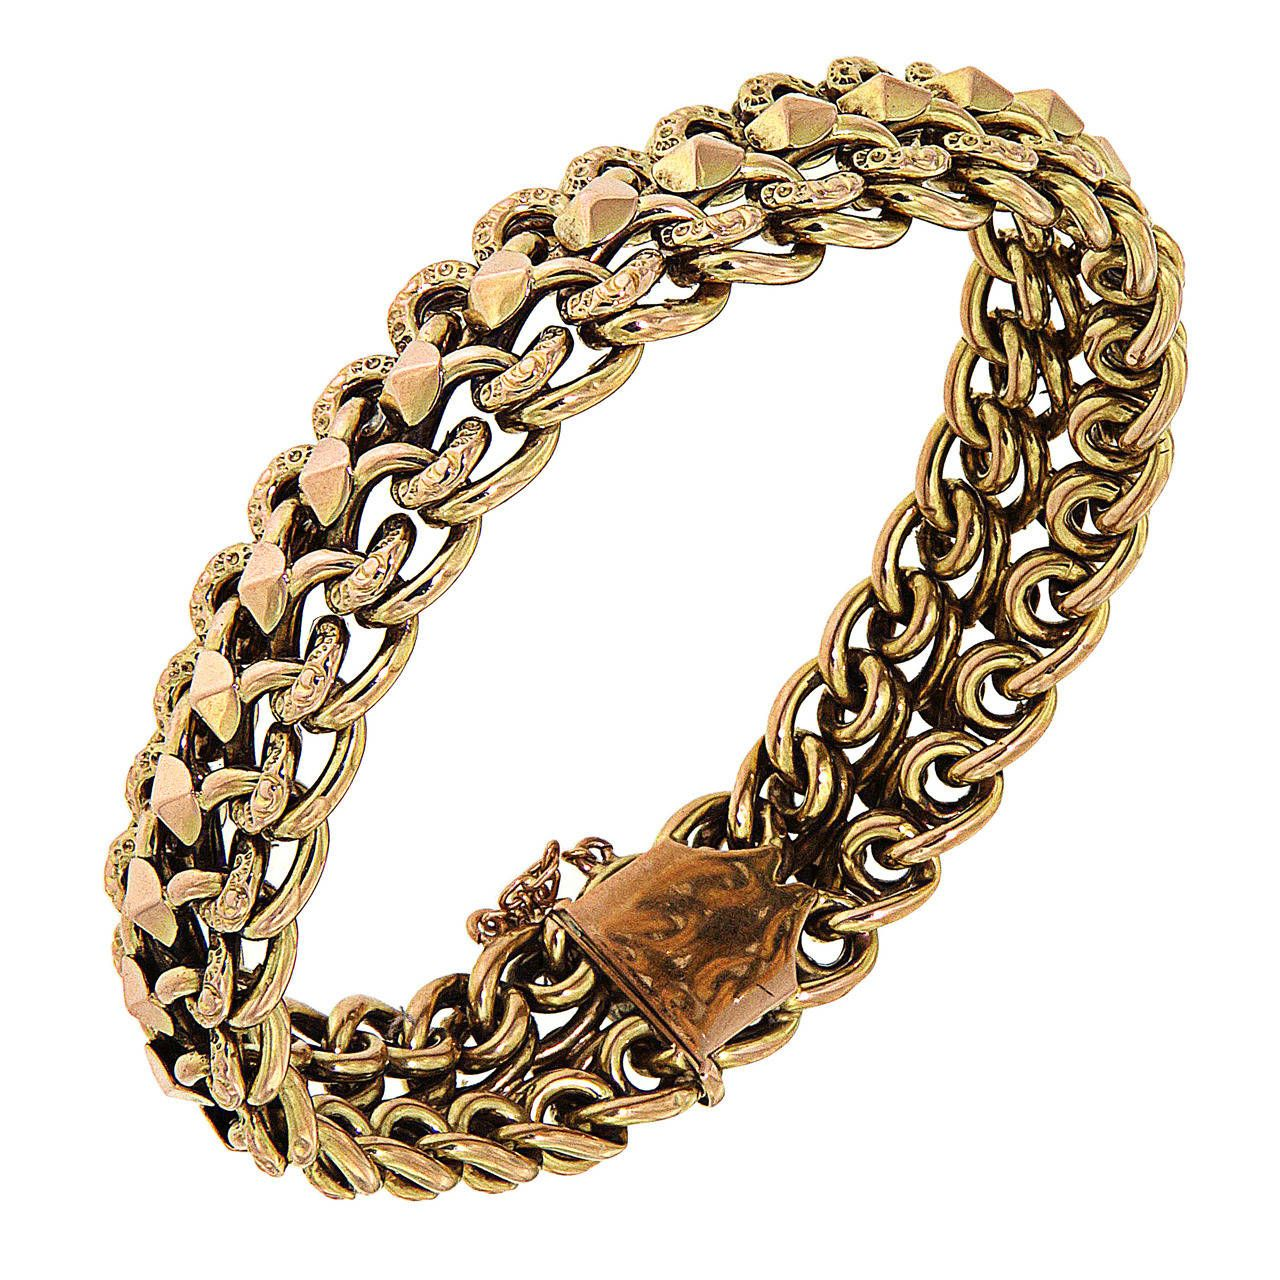 1950s Engraved Gold Bracelet | From a unique collection of vintage cuff bracelets at https://www.1stdibs.com/jewelry/bracelets/cuff-bracelets/